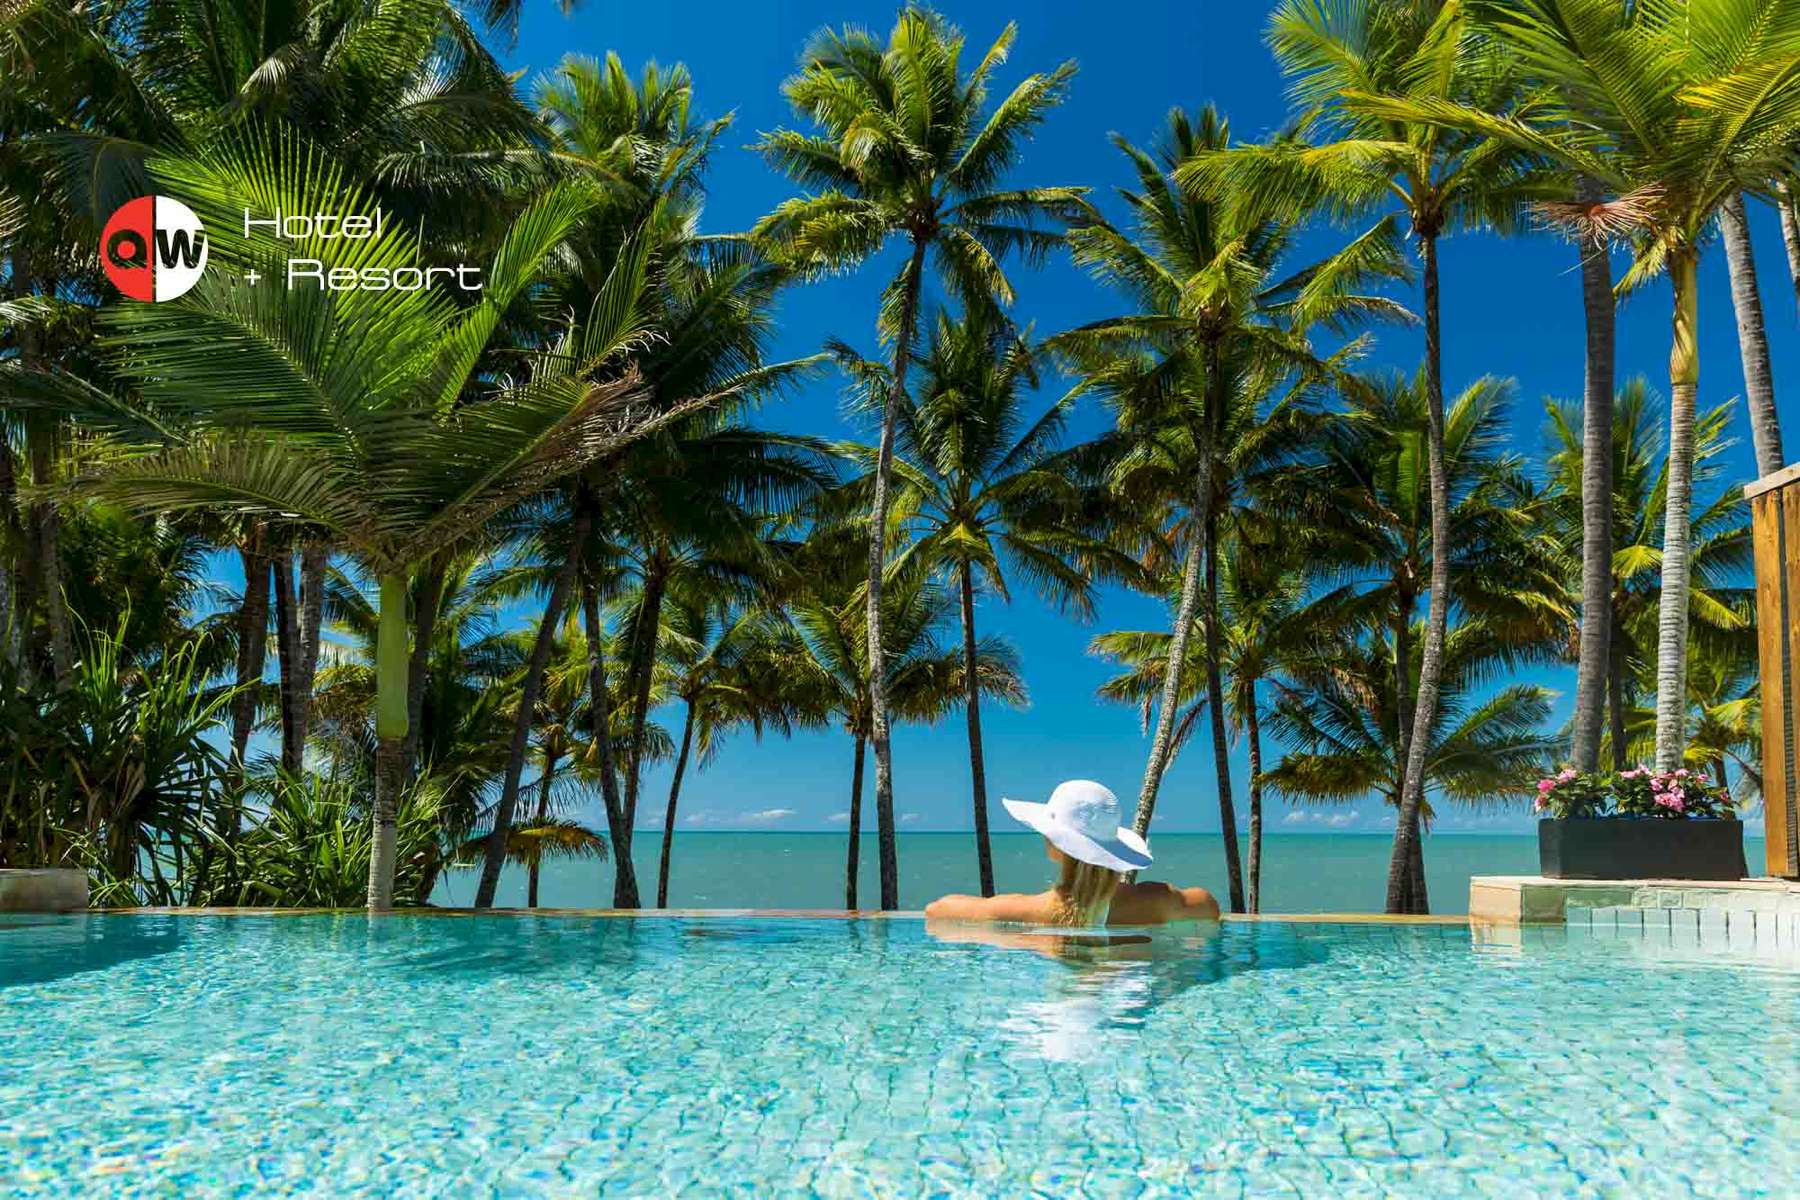 Woman swimming in resort pool overlooking palms trees and beach at Palm Cove by photographer Cairns